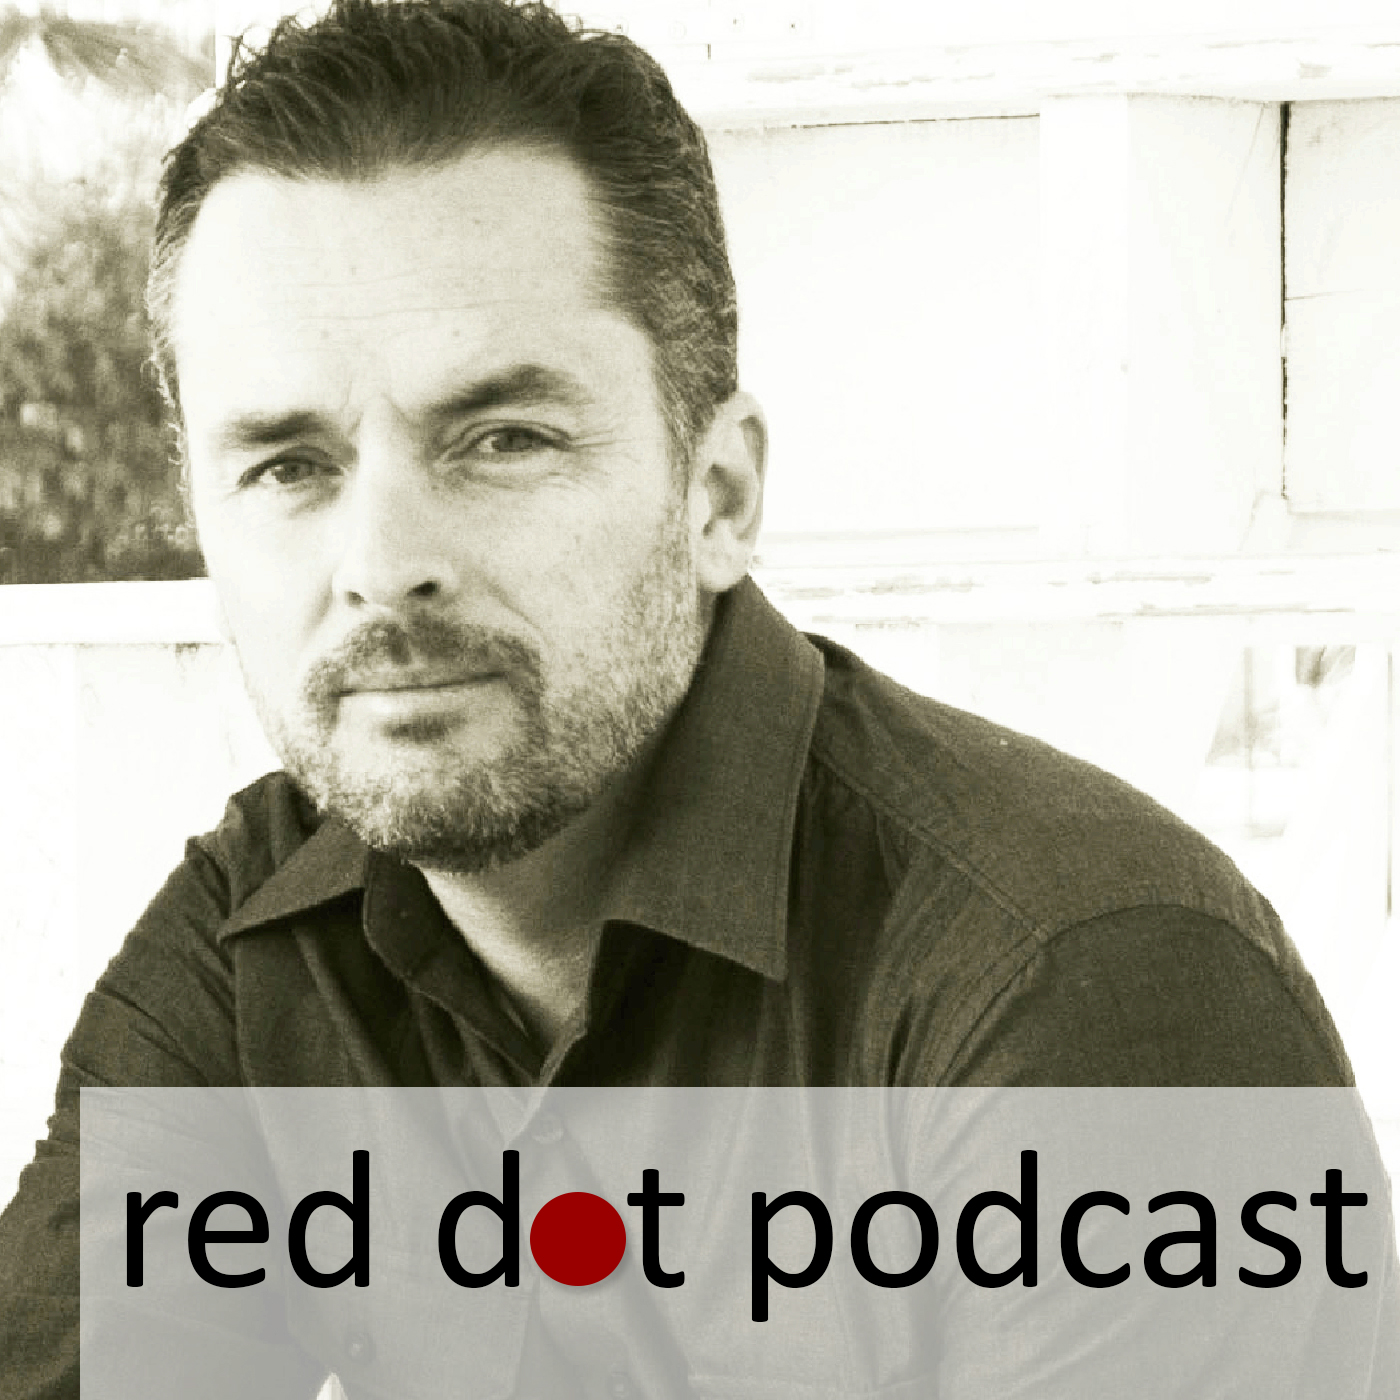 RedDot Podcast | Episode 010 | Ask a Gallery Owner - Expanding Gallery Representation, Converting Interest into Art Sales, Re-branding Your Art